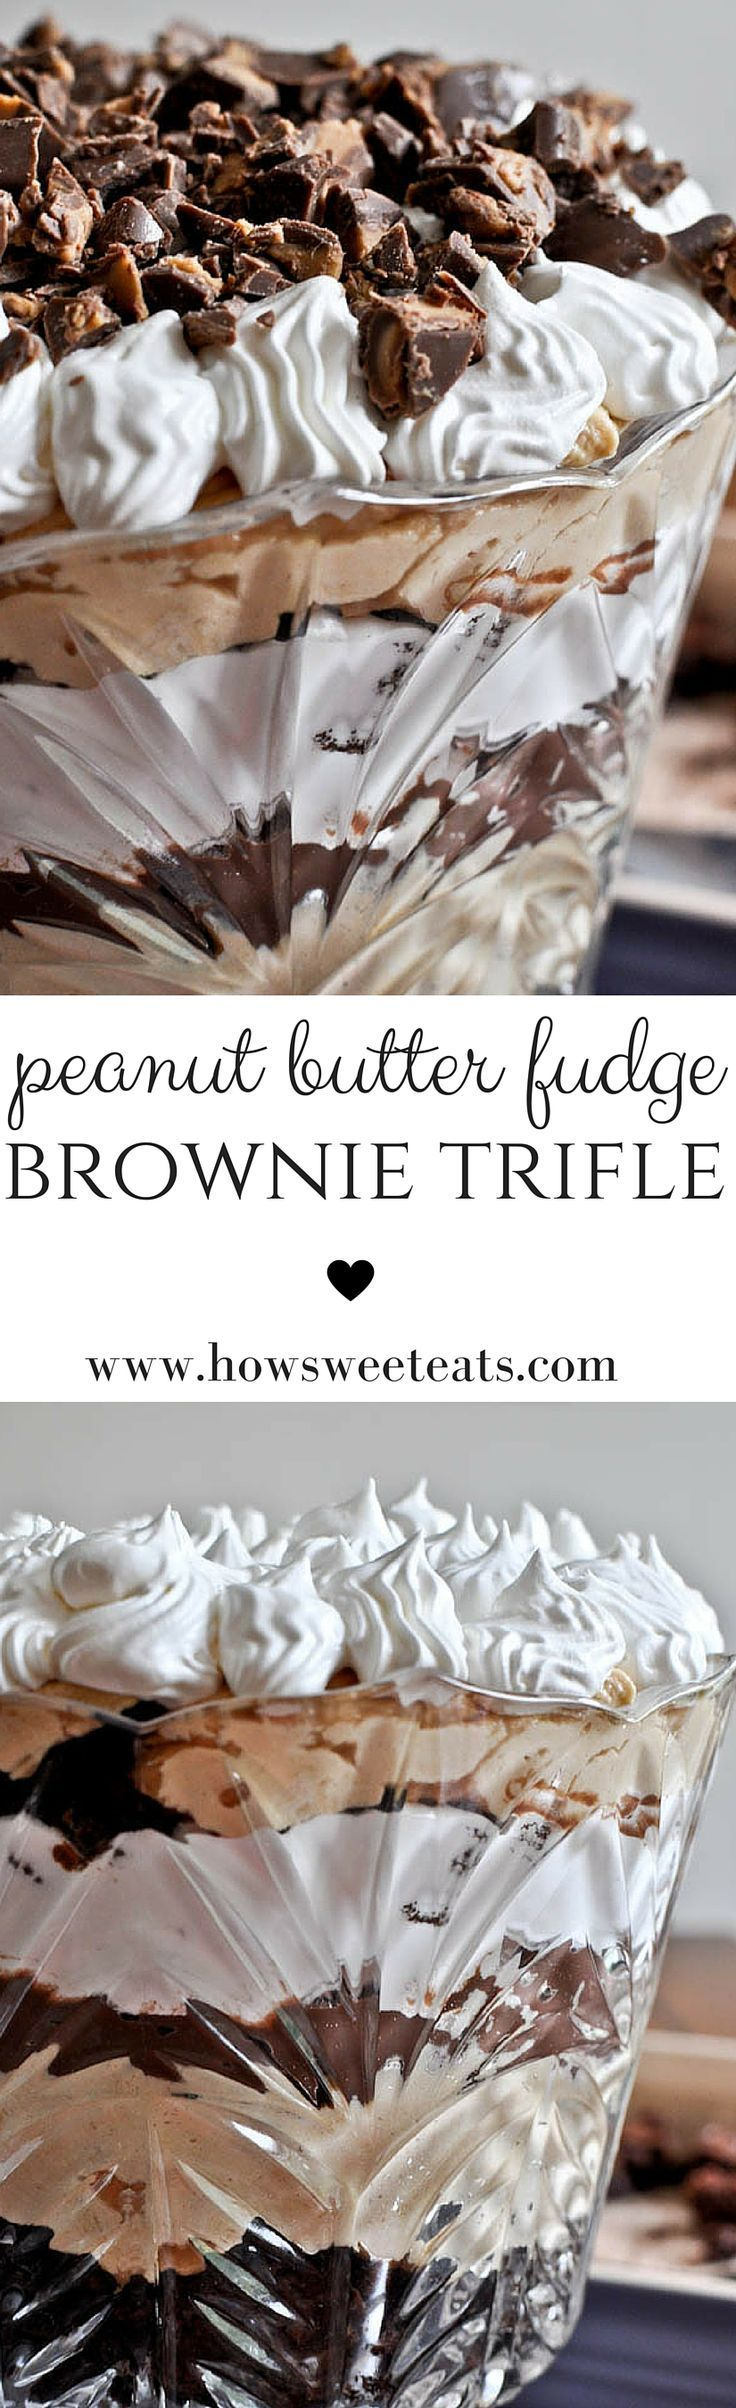 Peanut Butter Fudge Brownie Trifle. I http://howsweeteats.com /howsweeteats/ Follow My Pinterest: @vickileandro